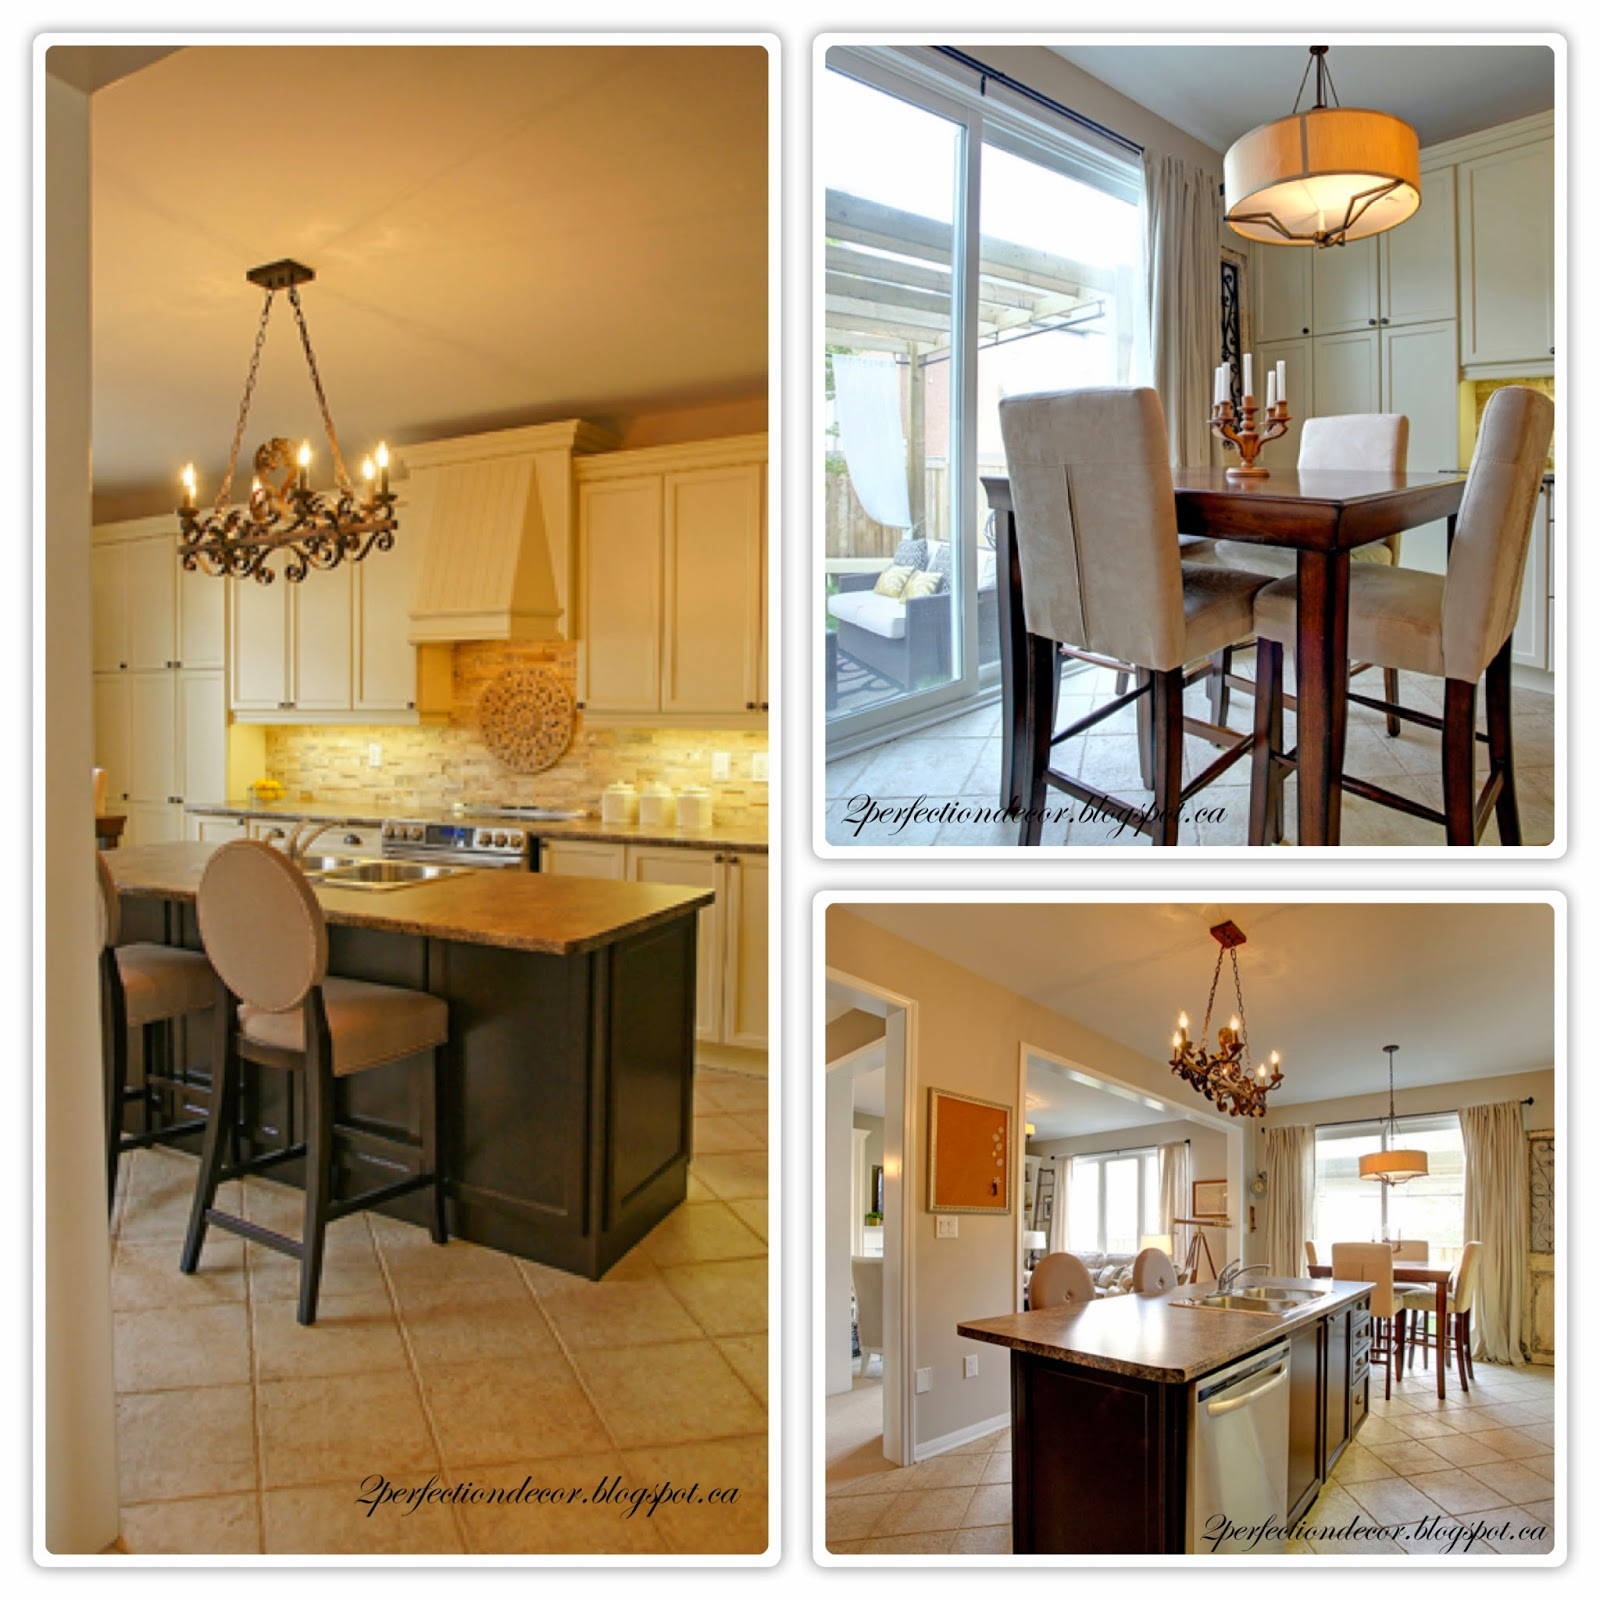 bronze pendant chandelier over island and pendant over kitchen table